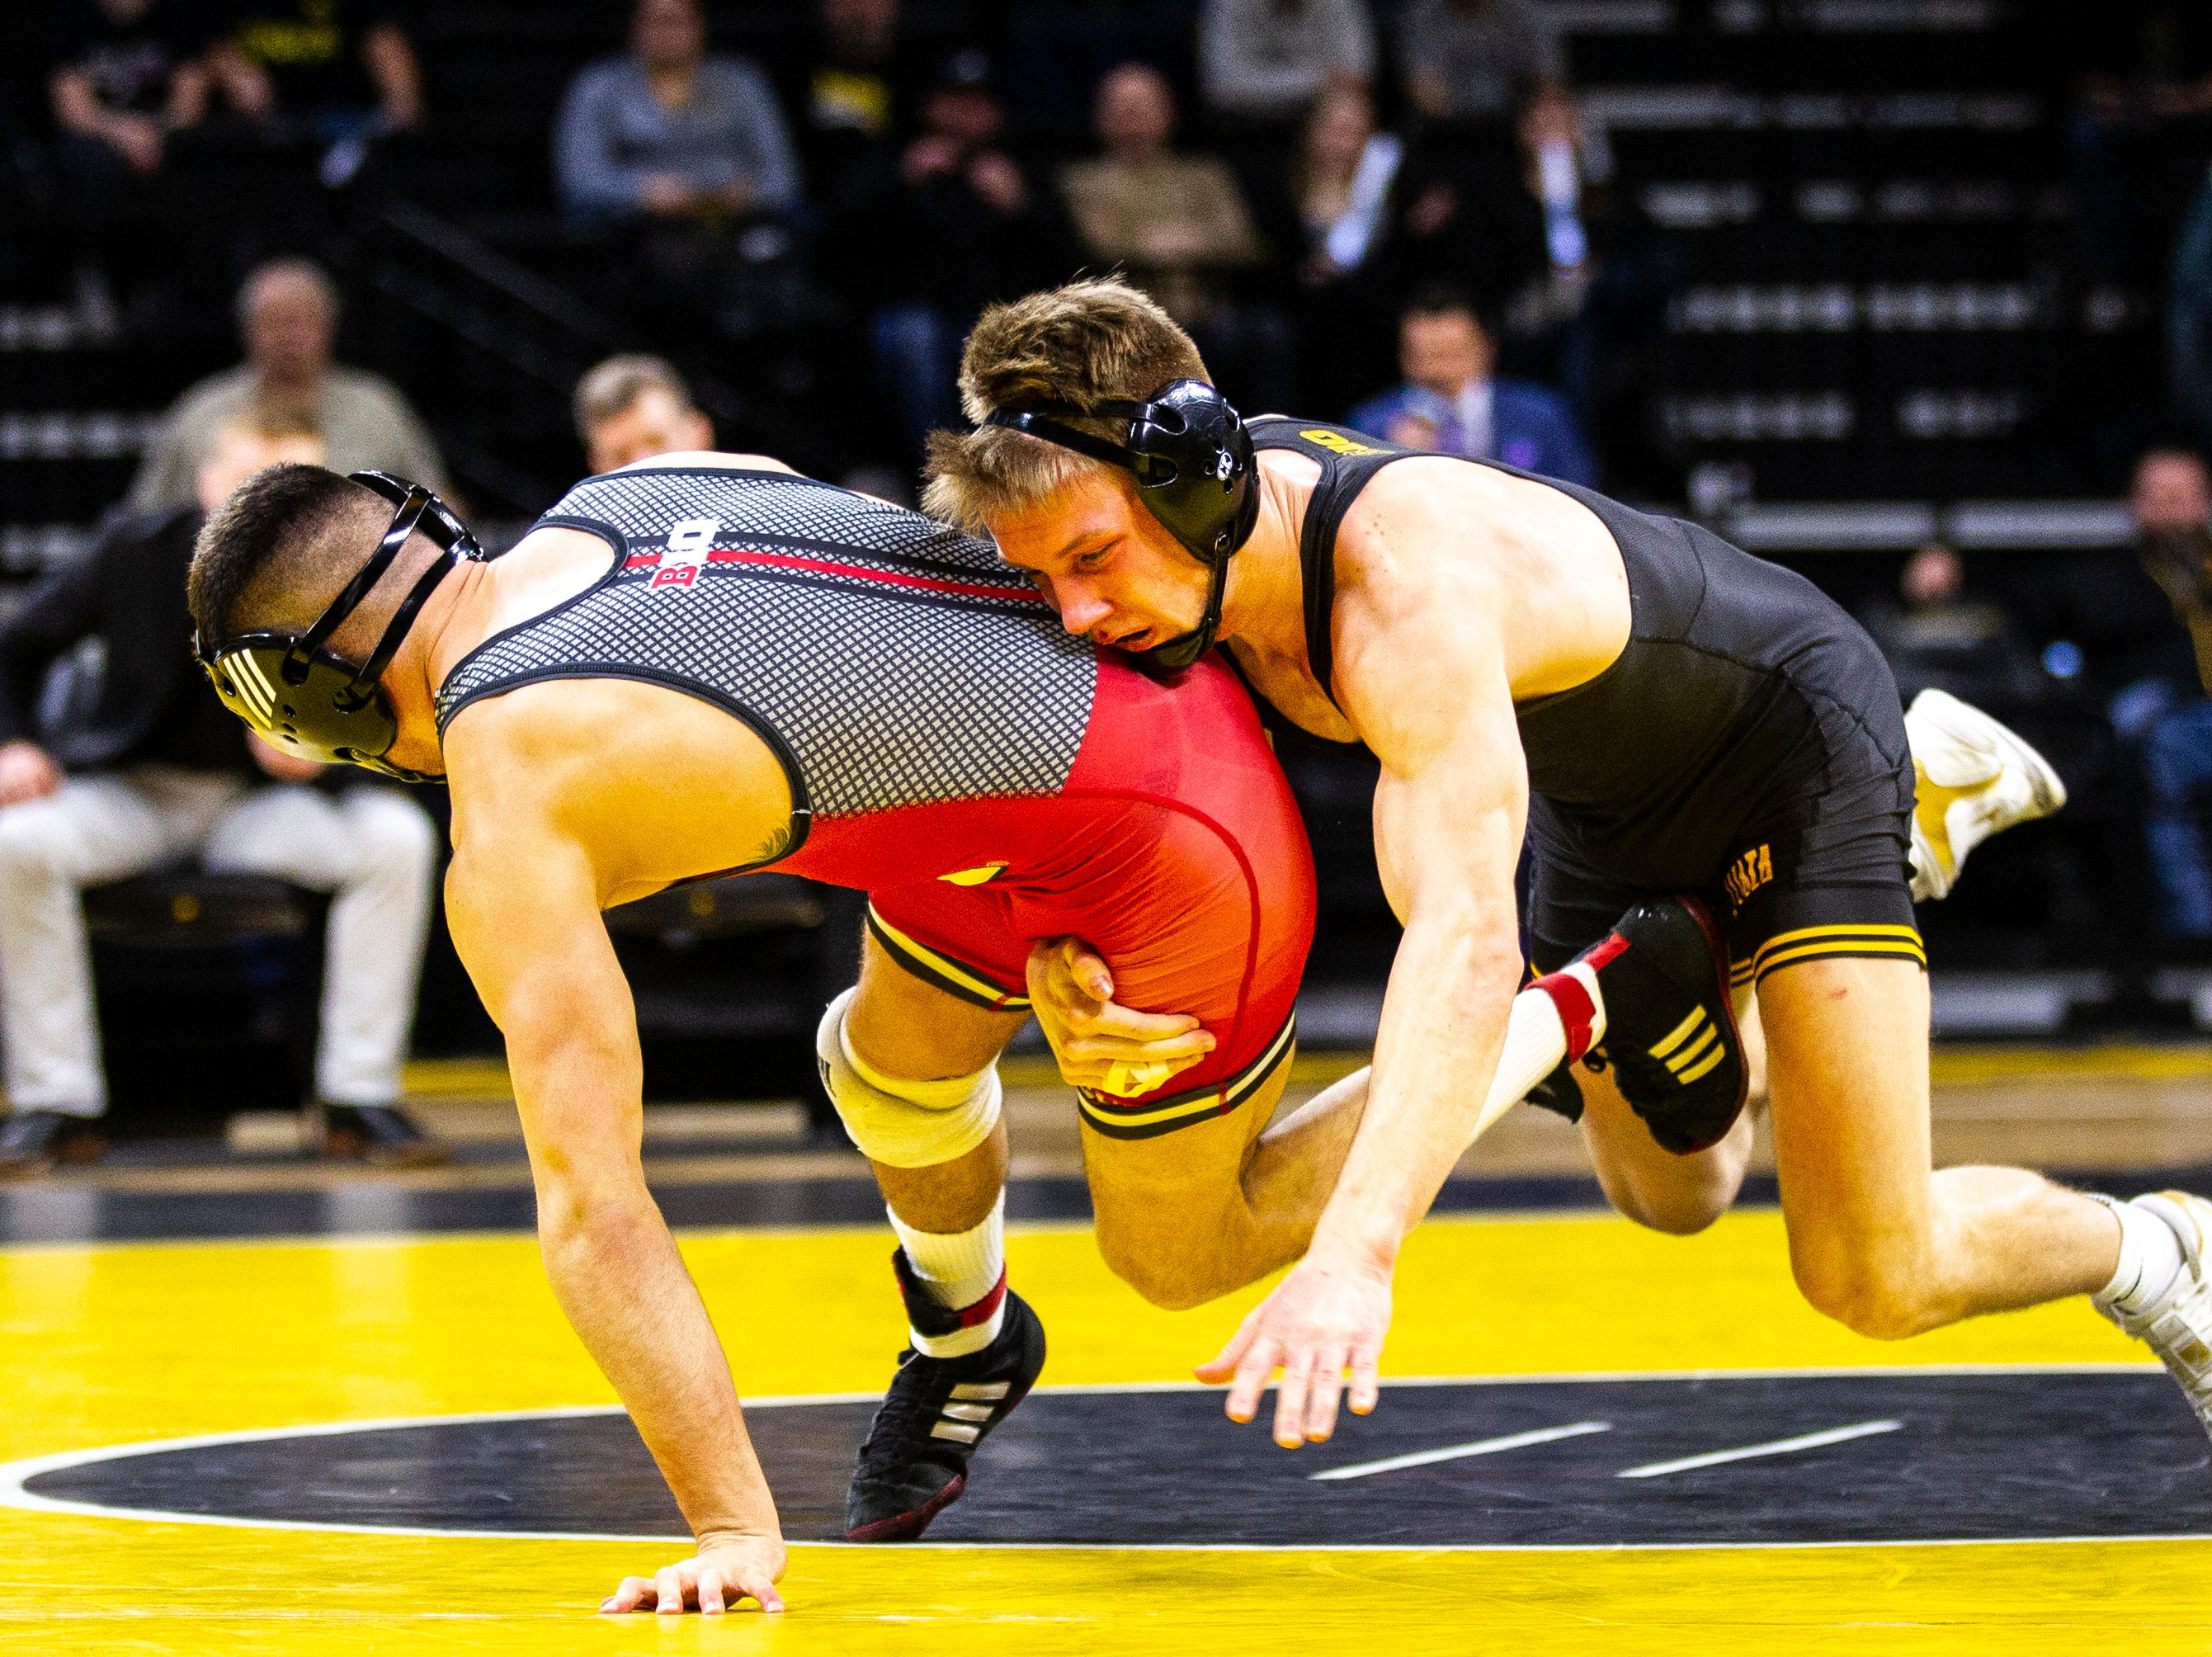 Iowa's Max Murin, right, wrestles Rutgers' Peter Lipari at 141 during a NCAA Big Ten Conference wrestling dual on Friday, Jan. 18, 2019, at Carver-Hawkeye Arena in Iowa City, Iowa.